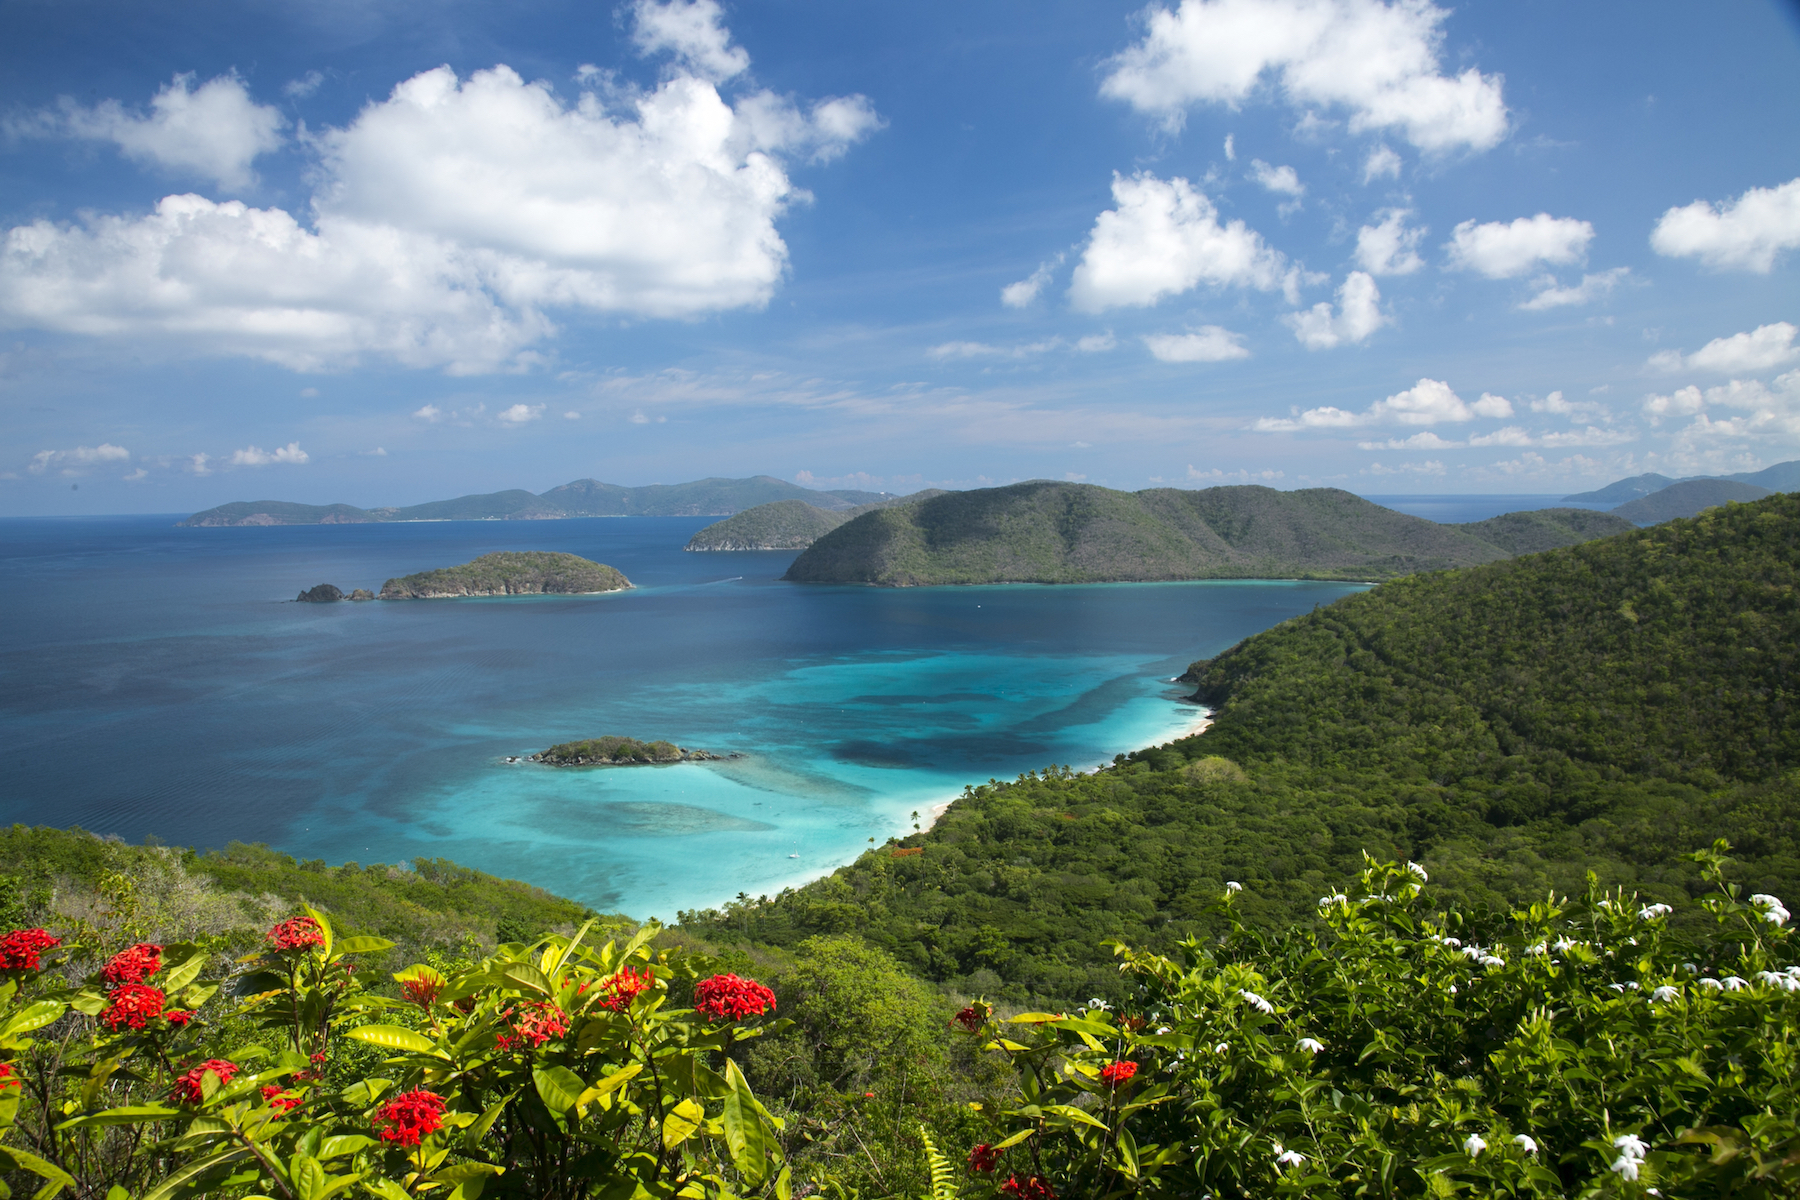 Single Family Home for Sale at Estate Catherineberg 3-13 & 3-14 Estate Catherineberg St John, 00830 United States Virgin Islands